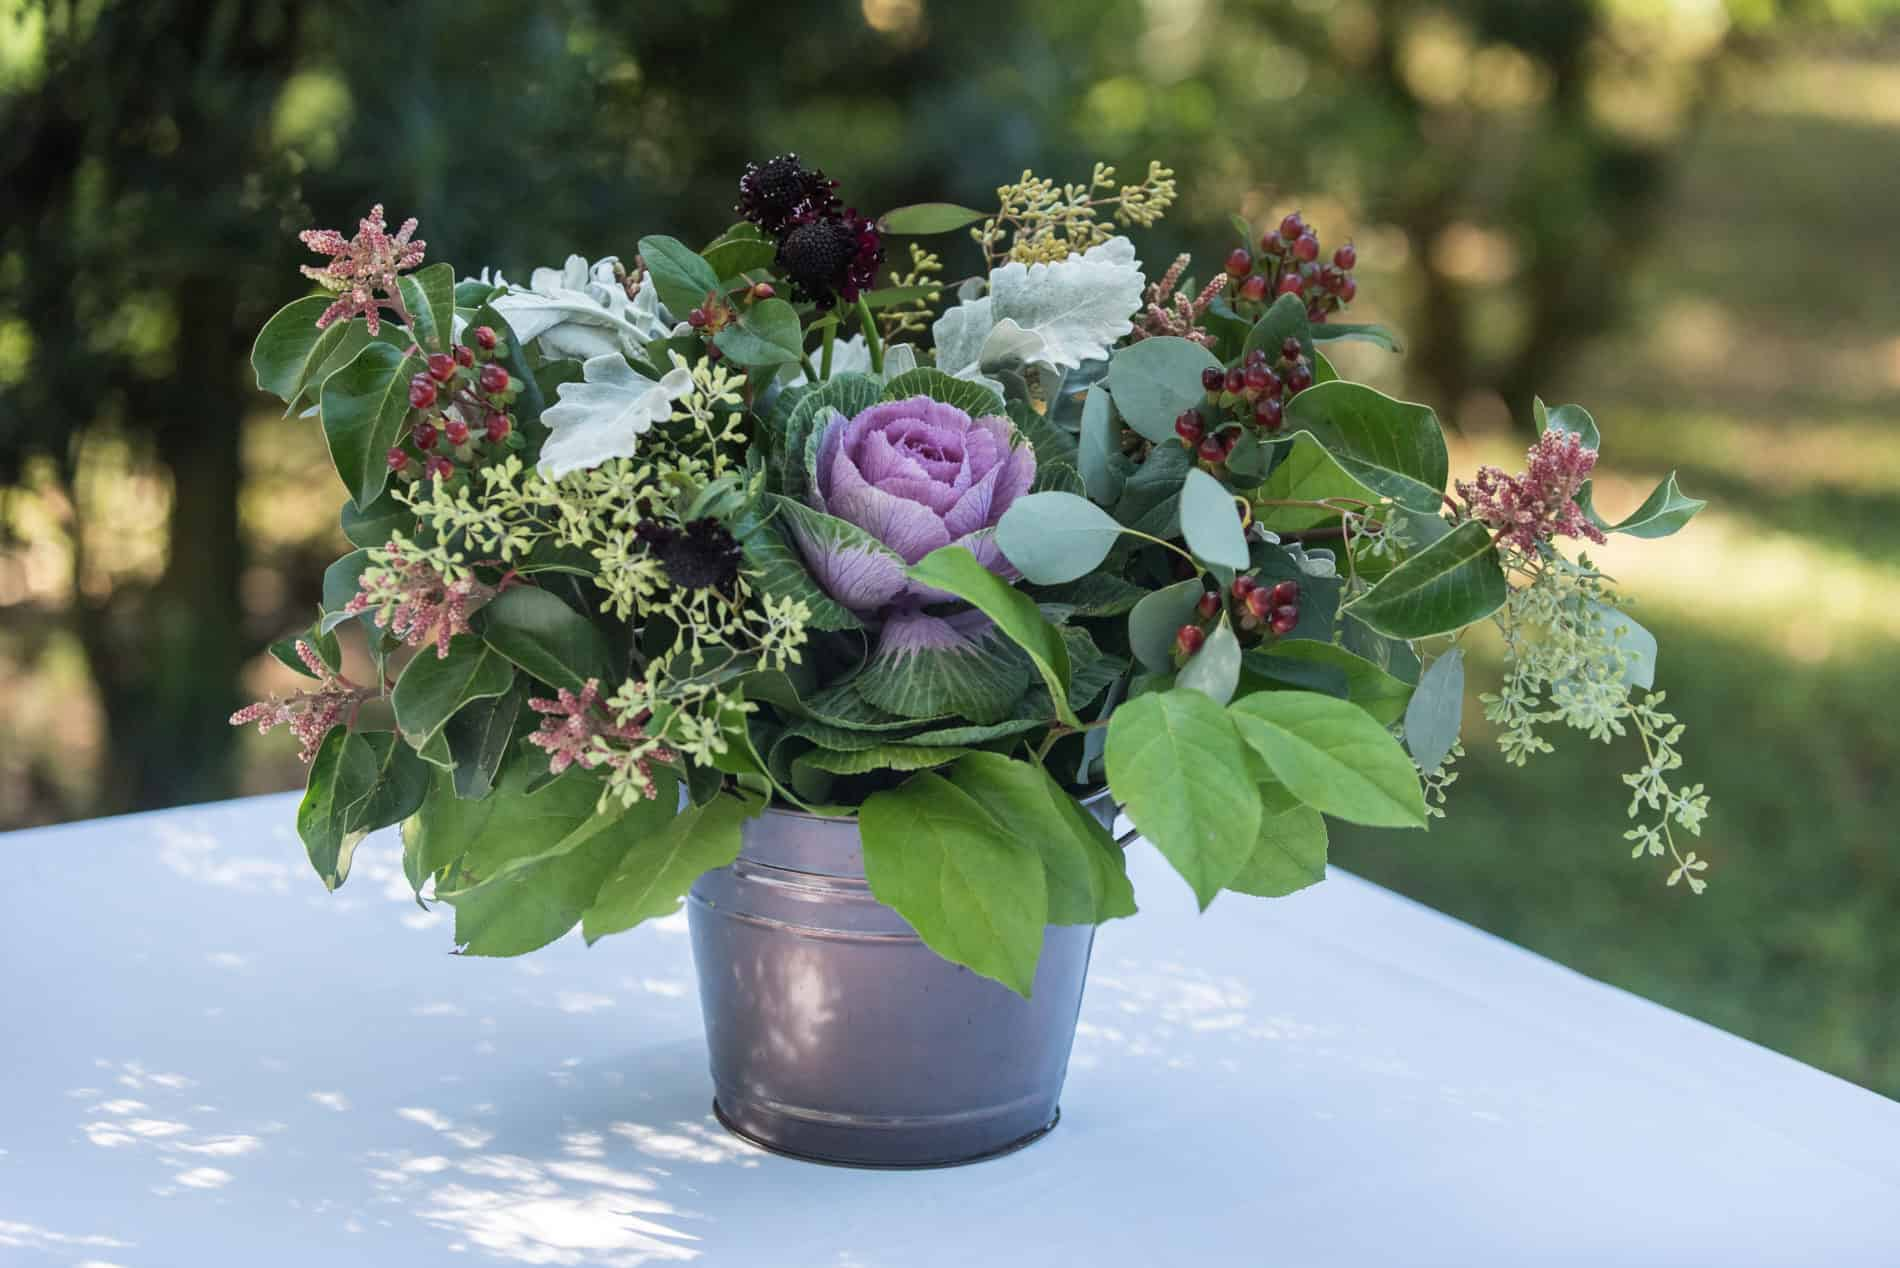 Simple flowered centerpiece at an outdoor wedding